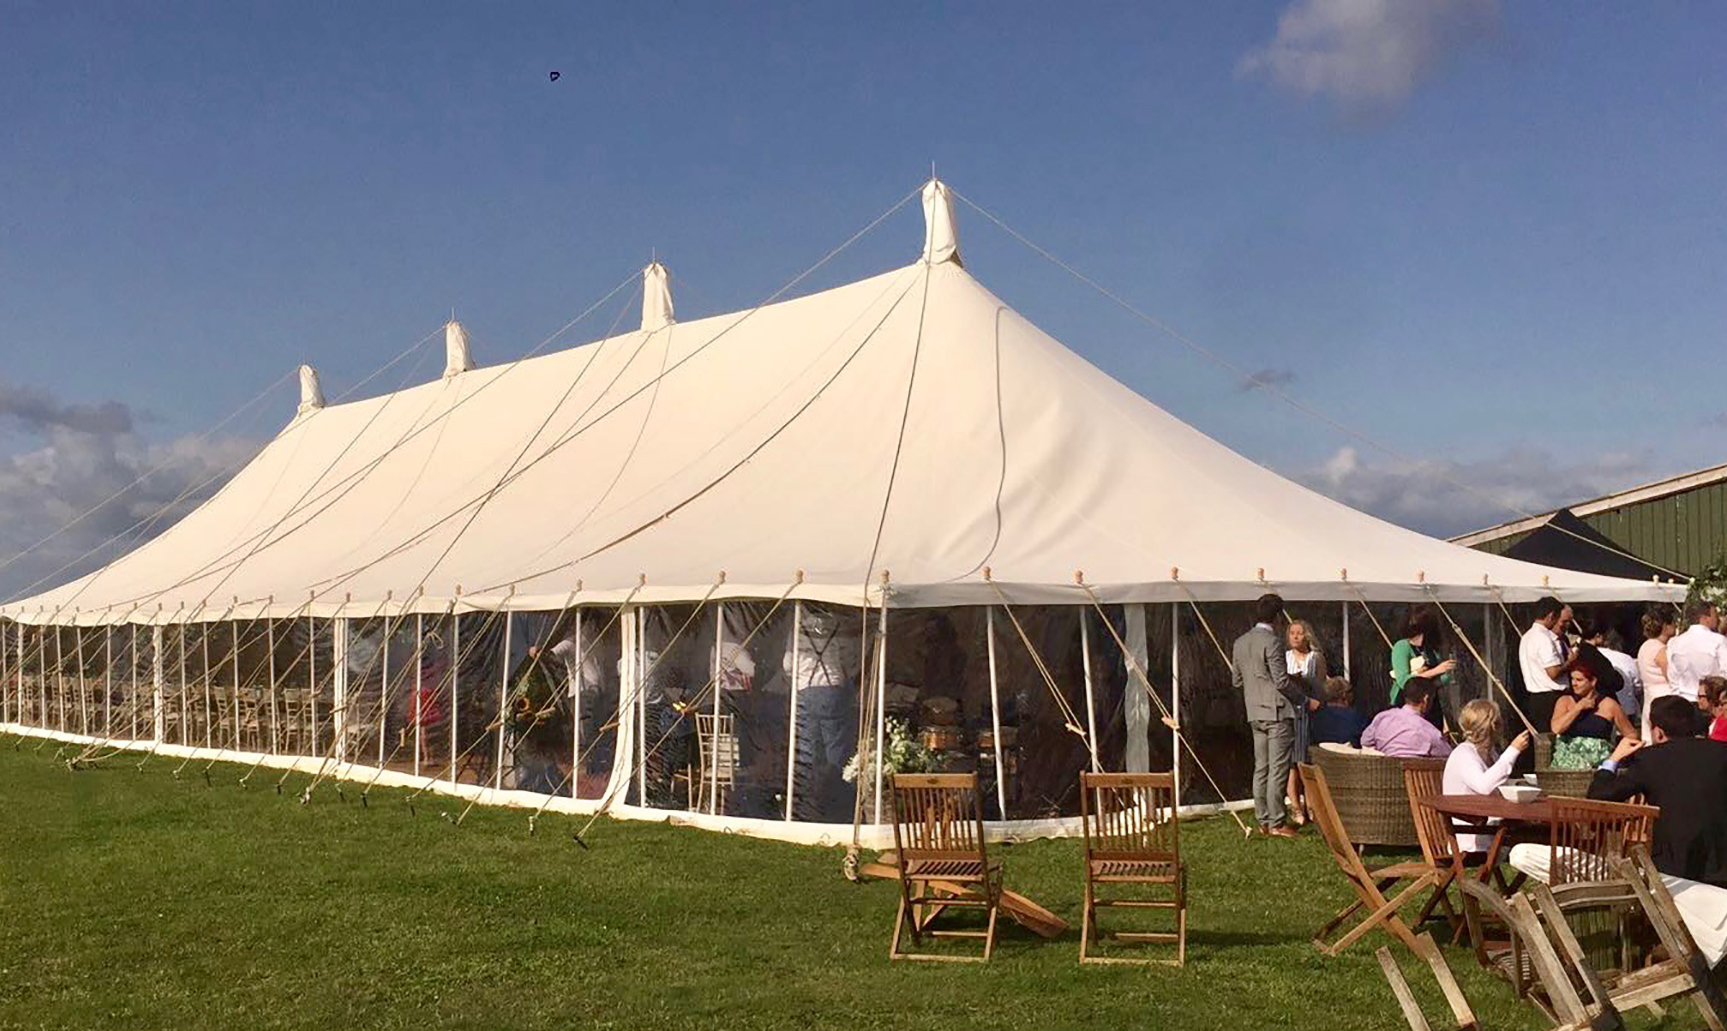 The Windsor Marquee